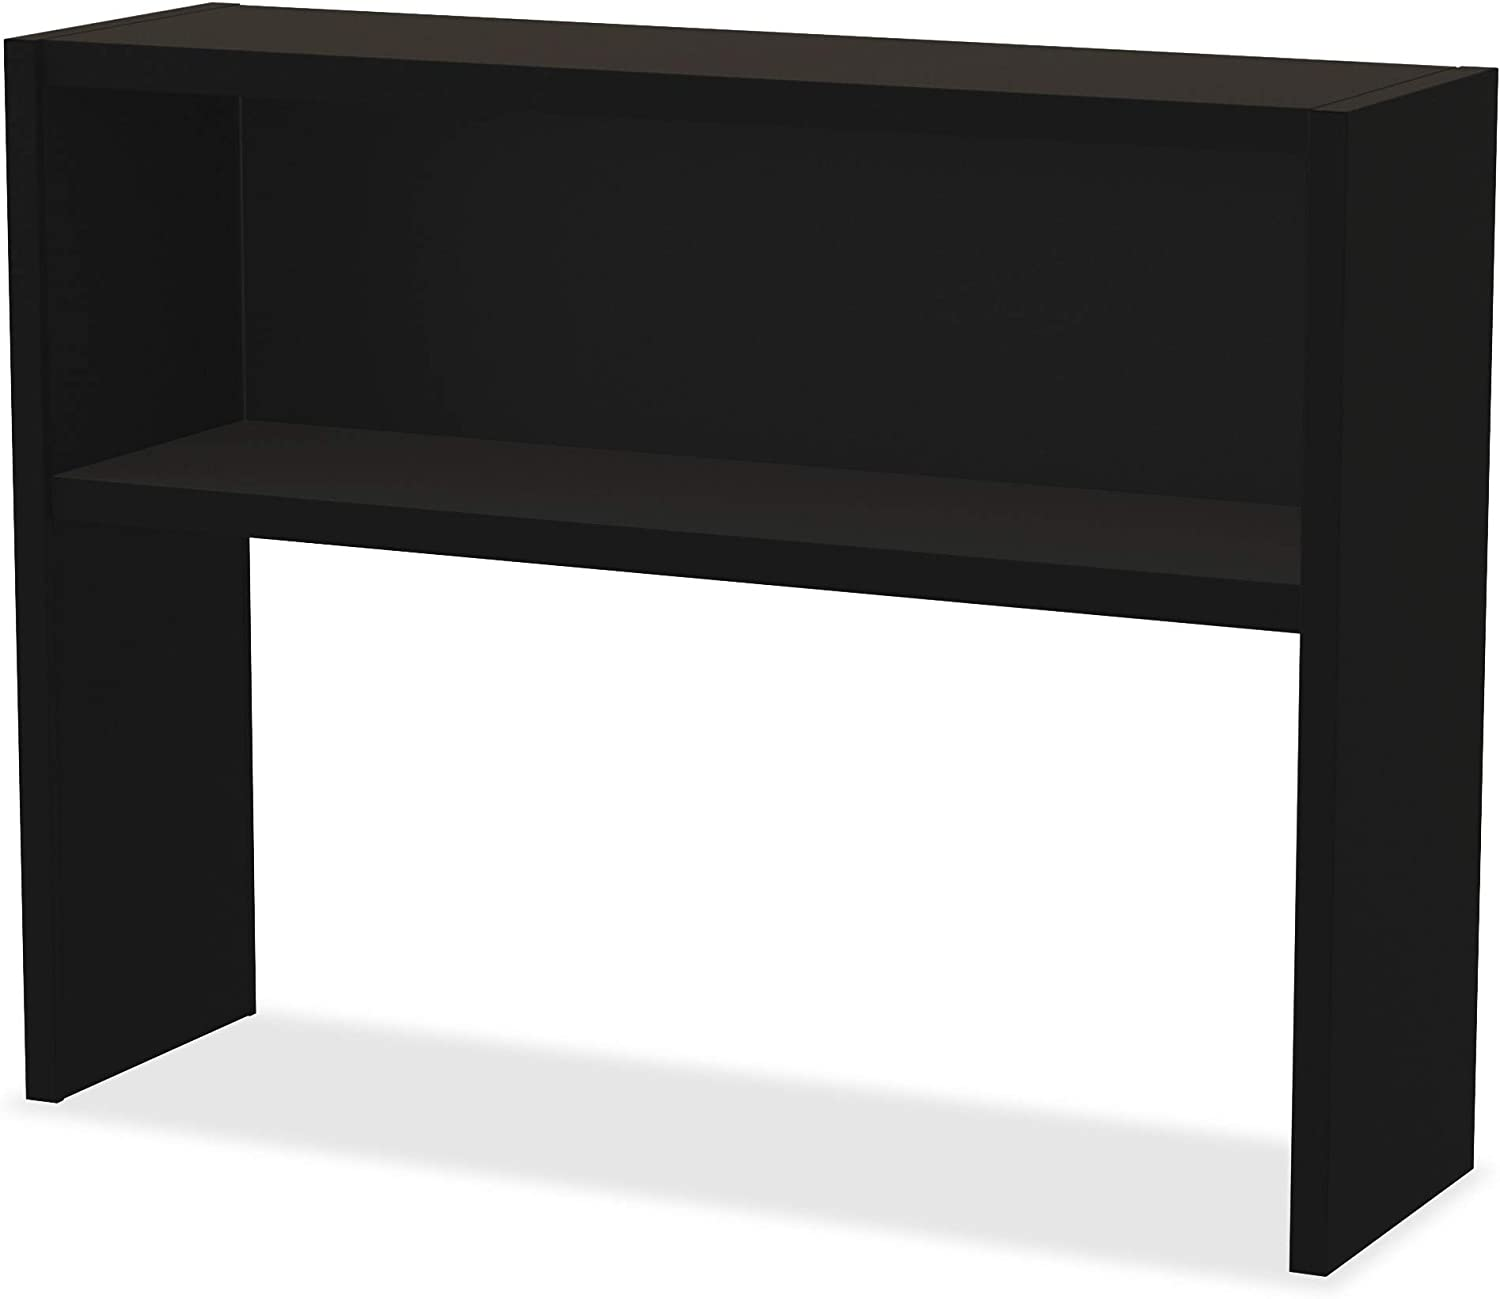 Lorell Modular Desk Series Detroit Mall Stack Hutch Spring new work one after another Black